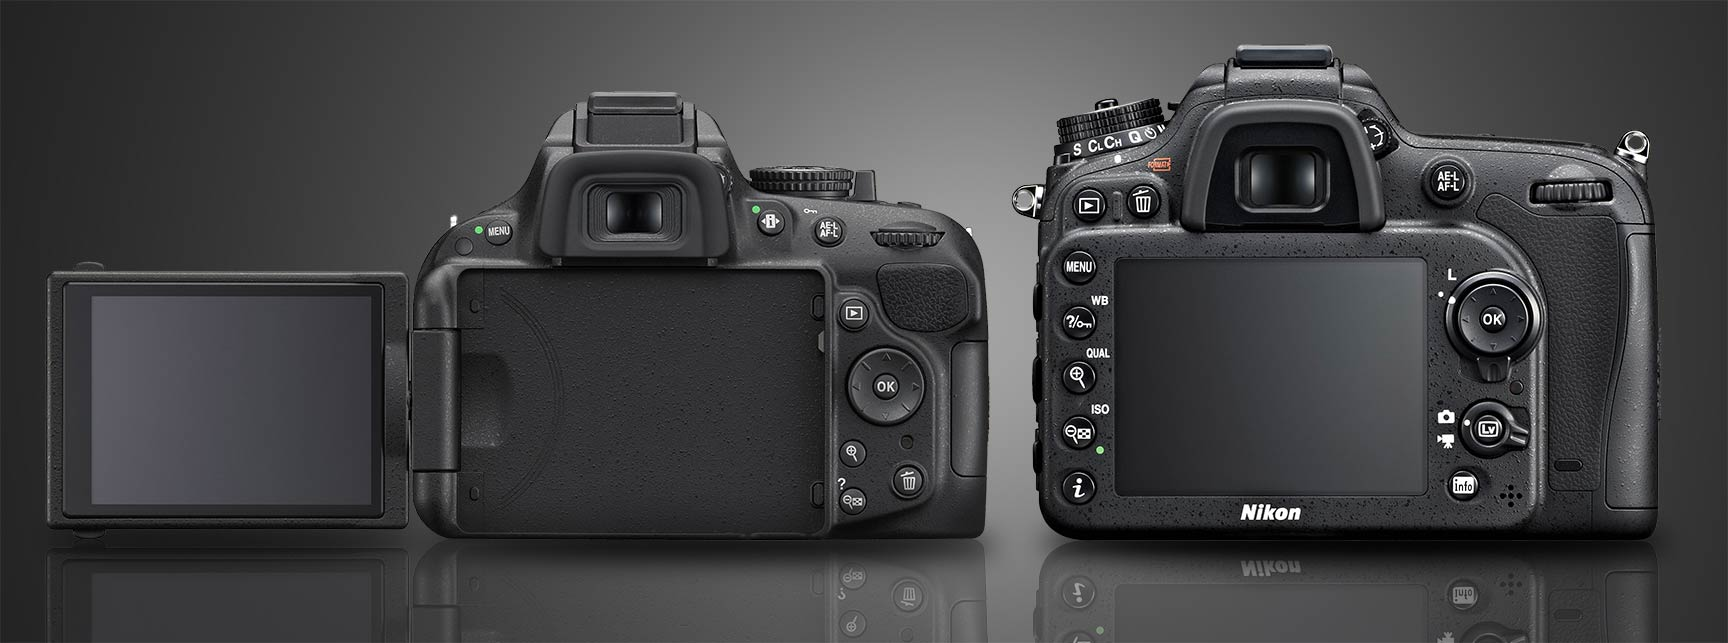 D7100 vs d5200 back & Nikon D5200 vs D7100 : Which Should You Buy? - Light And Matter